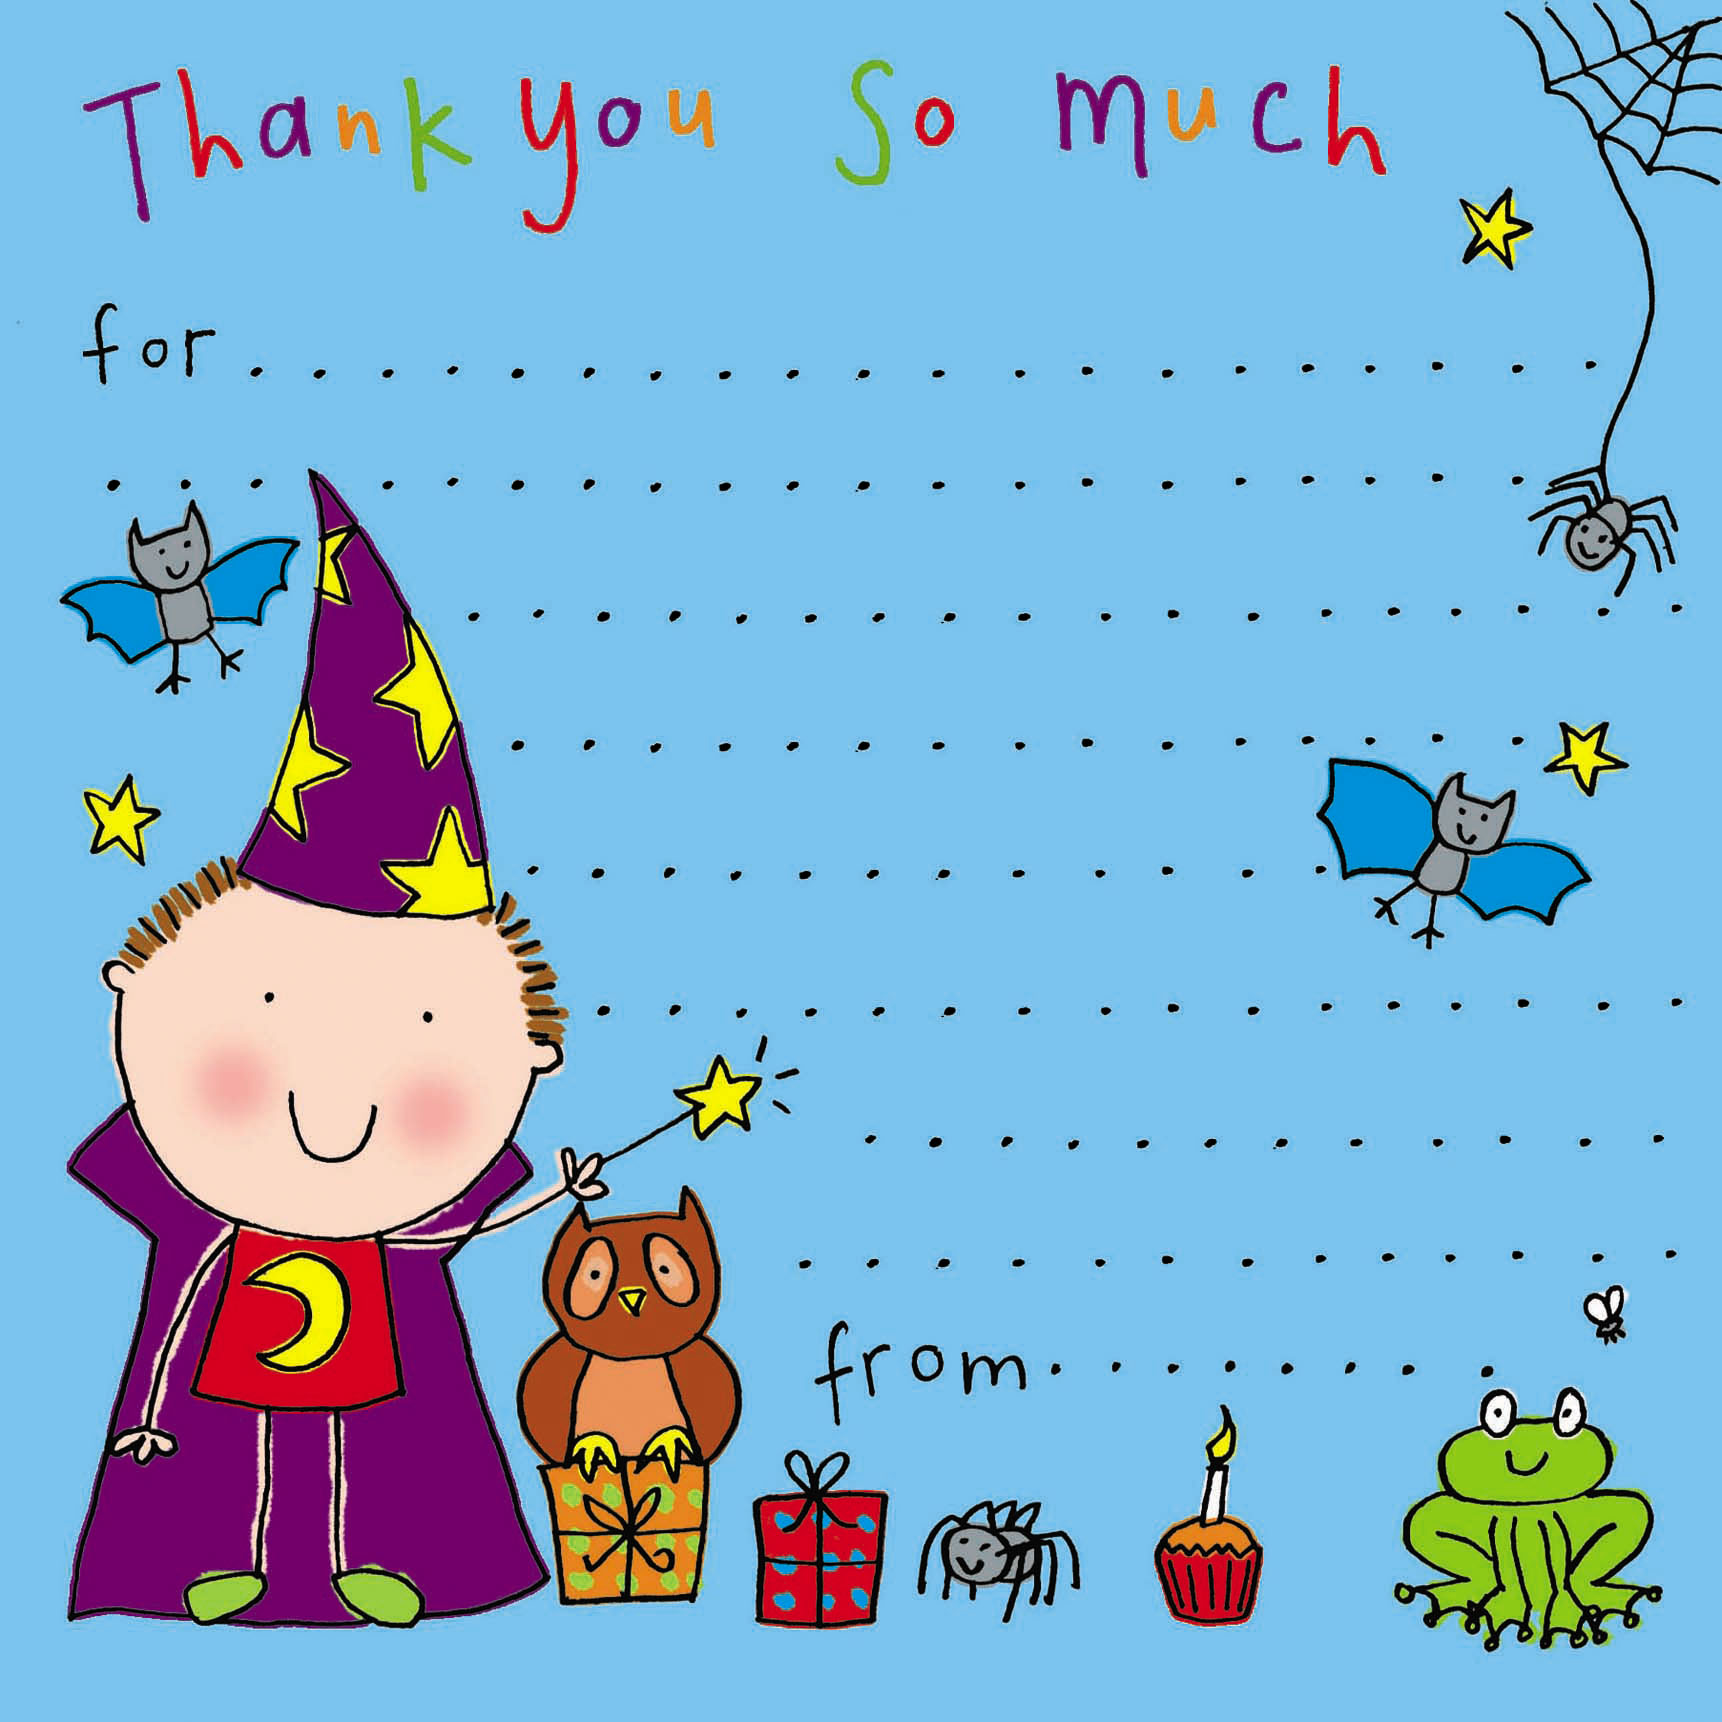 Thank you notes for kids thank you cards for children kids thank thank you notes for kids thank you cards for children kids thank you notes kids birthday thank you notes kids thank you note monicamarmolfo Images